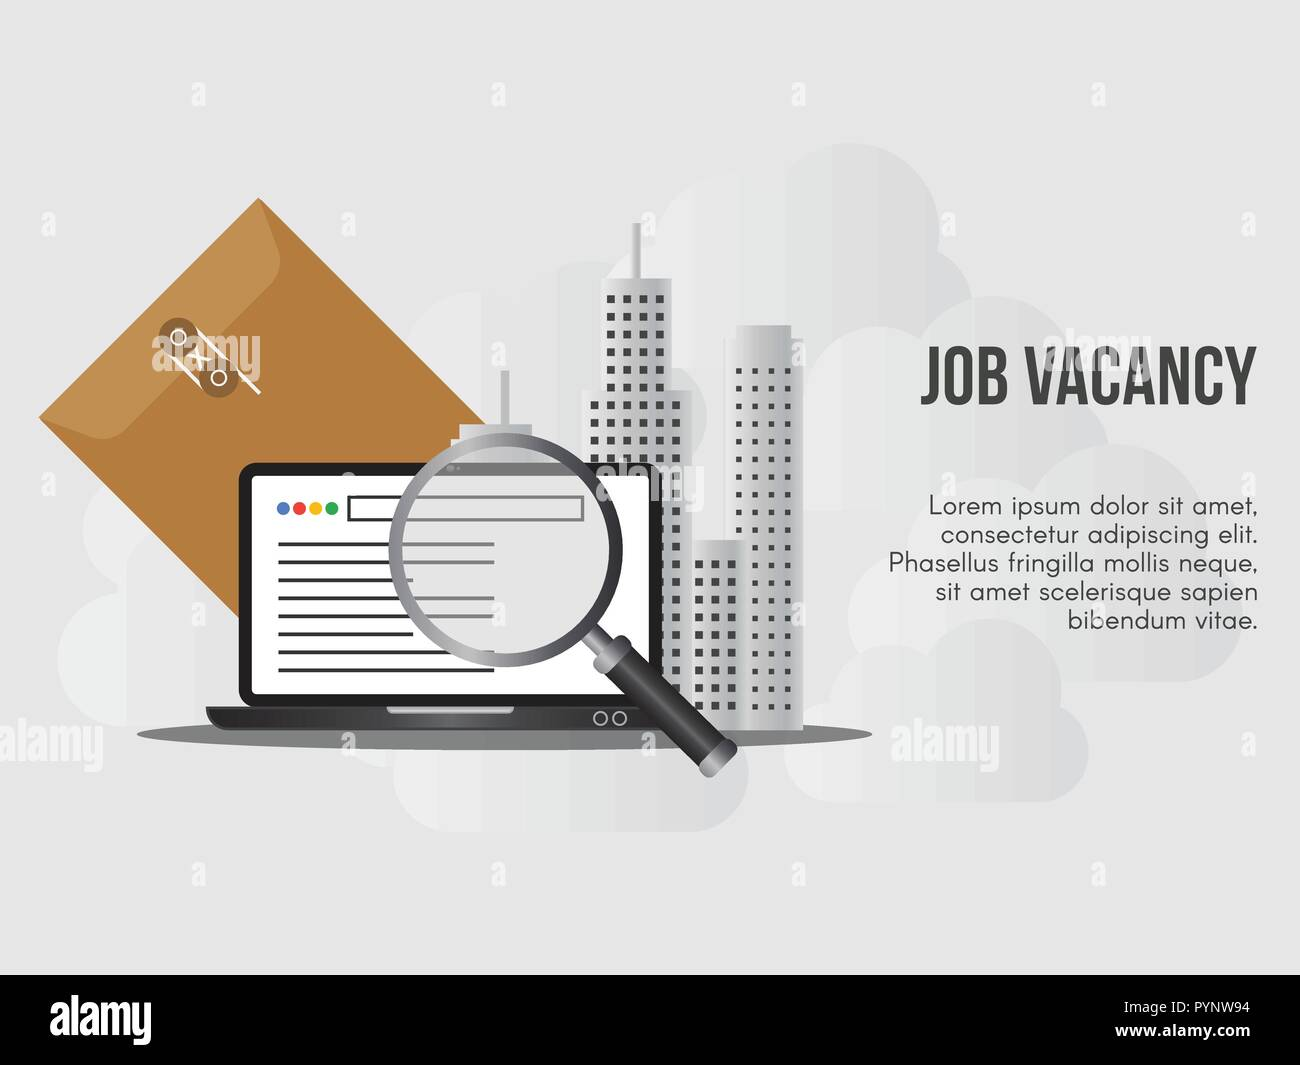 Job Vacancy Concept Ready To Use Vector Suitable For Background Wallpaper Landing Page Web Banner And Other Creative Work Stock Vector Image Art Alamy